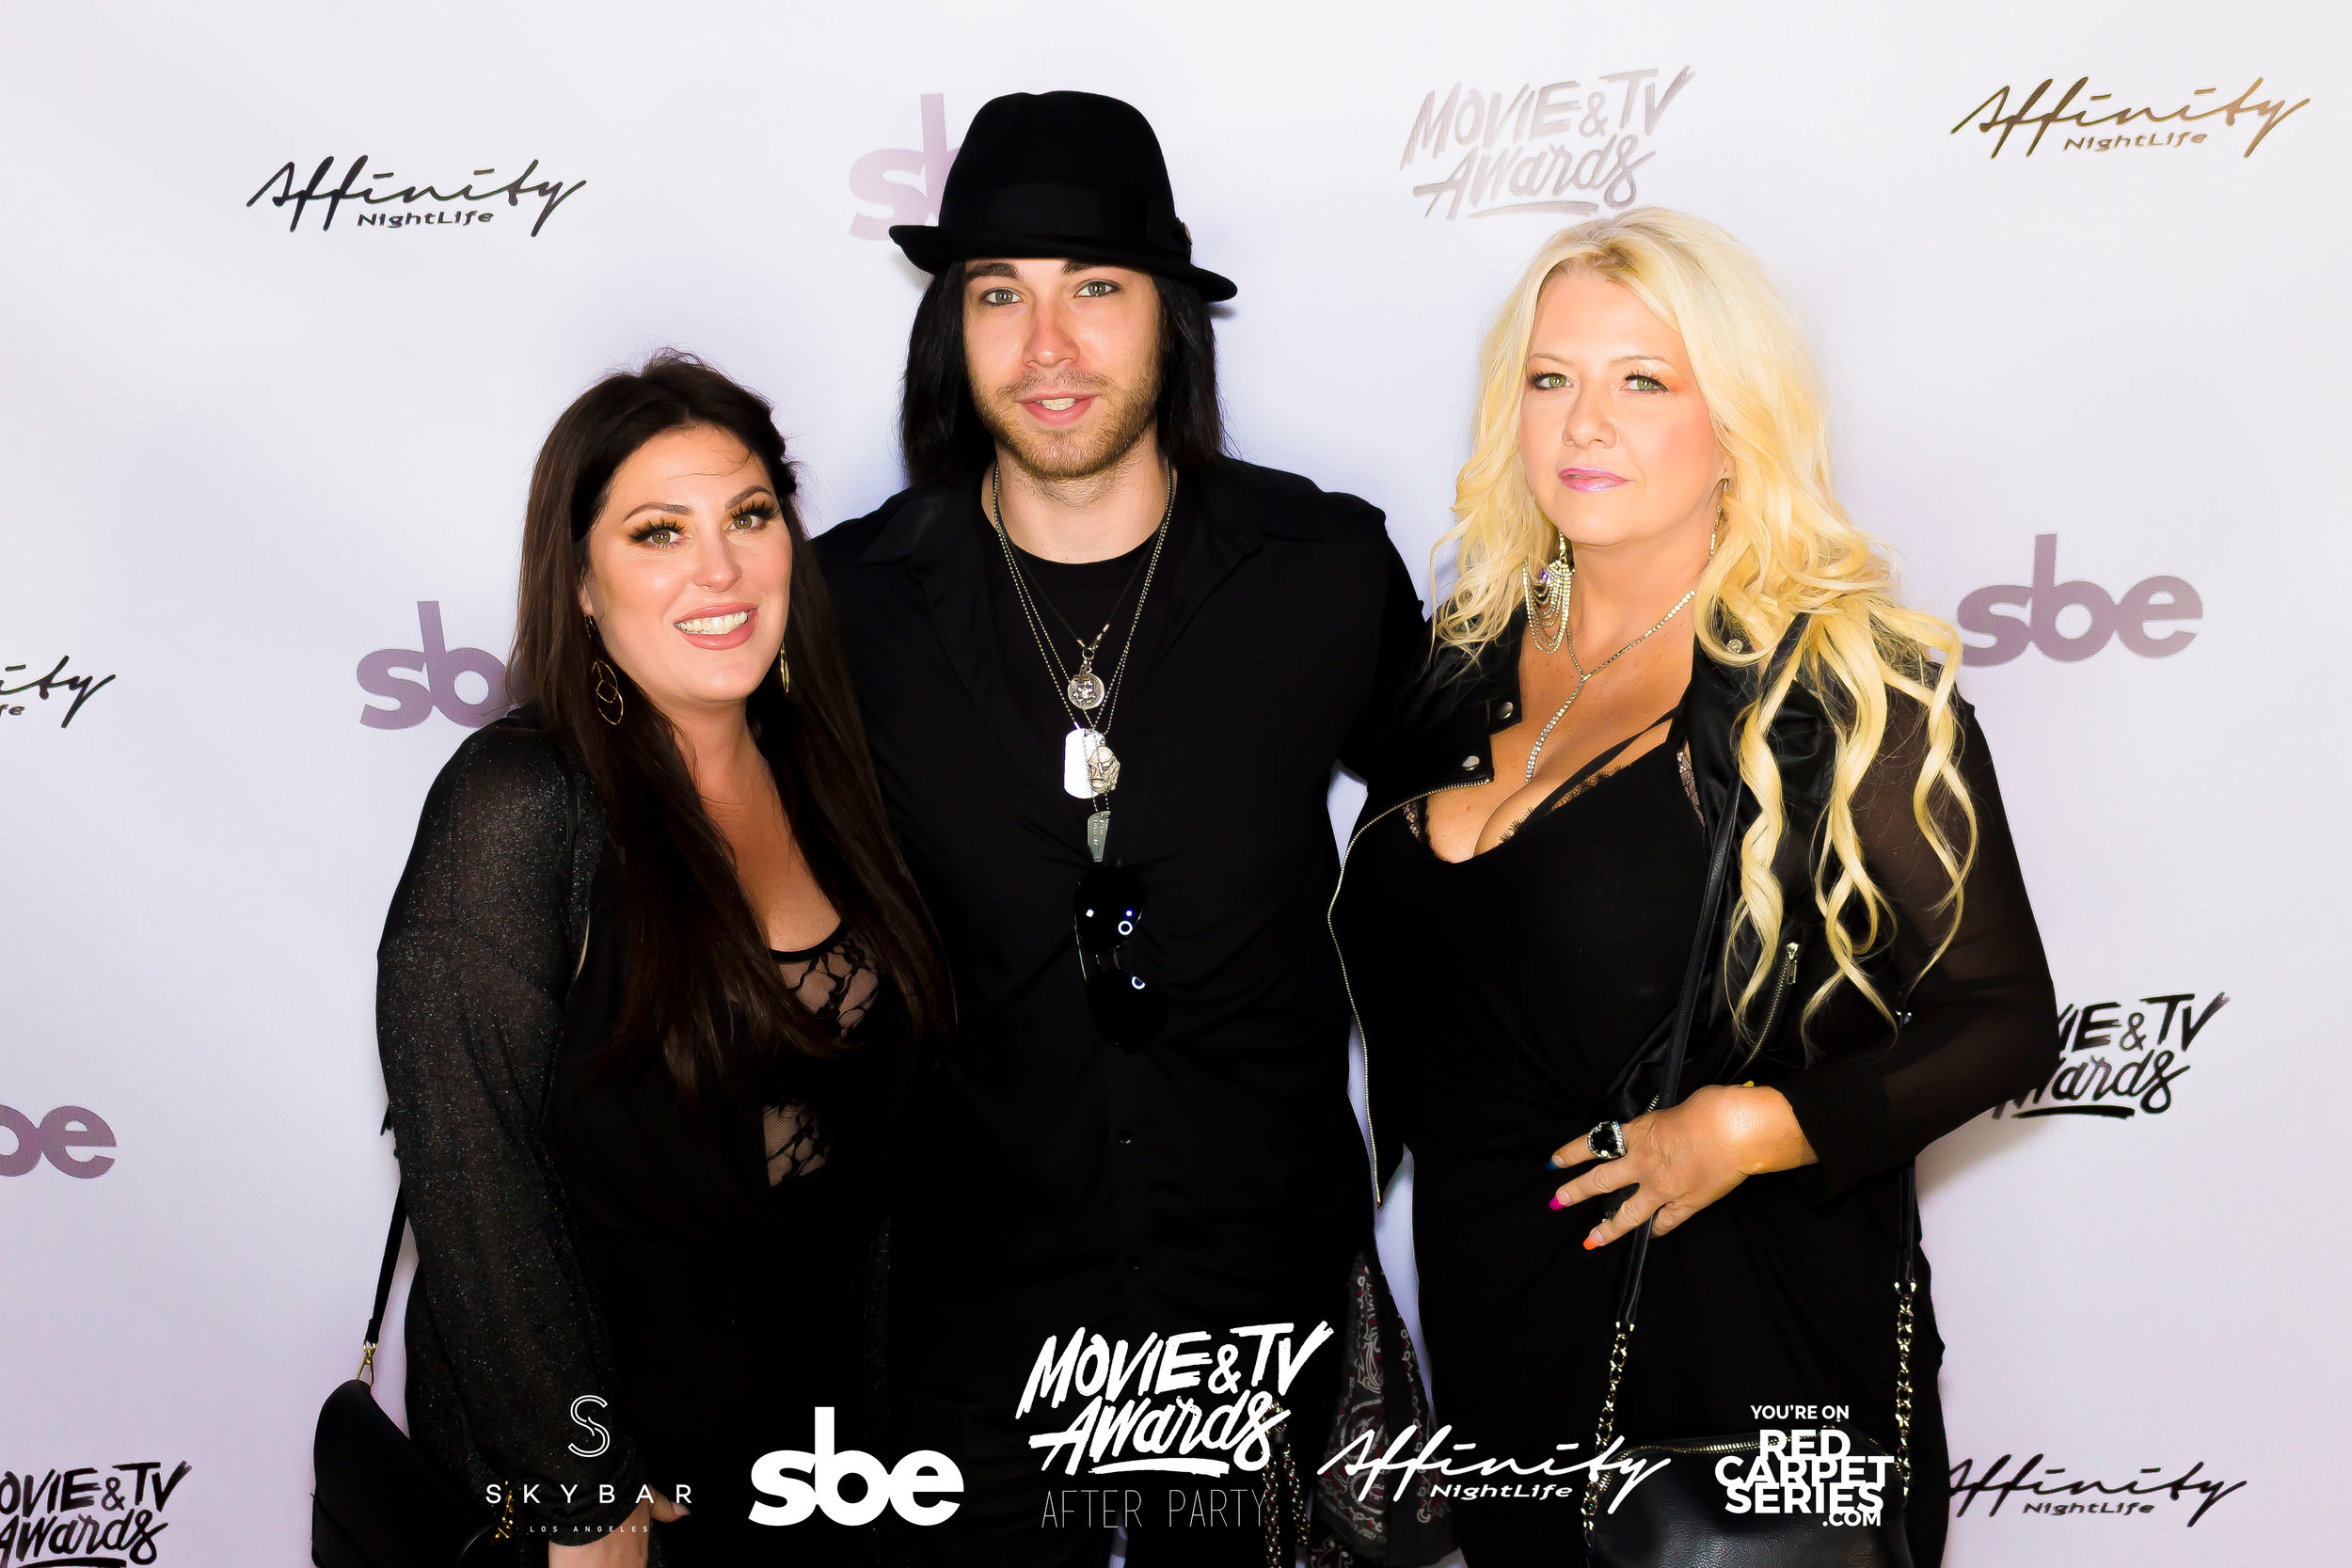 Affinity Nightlife MTV Movie & TV Awards After Party - Skybar at Mondrian - 06-15-19 - Vol. 1_21.jpg